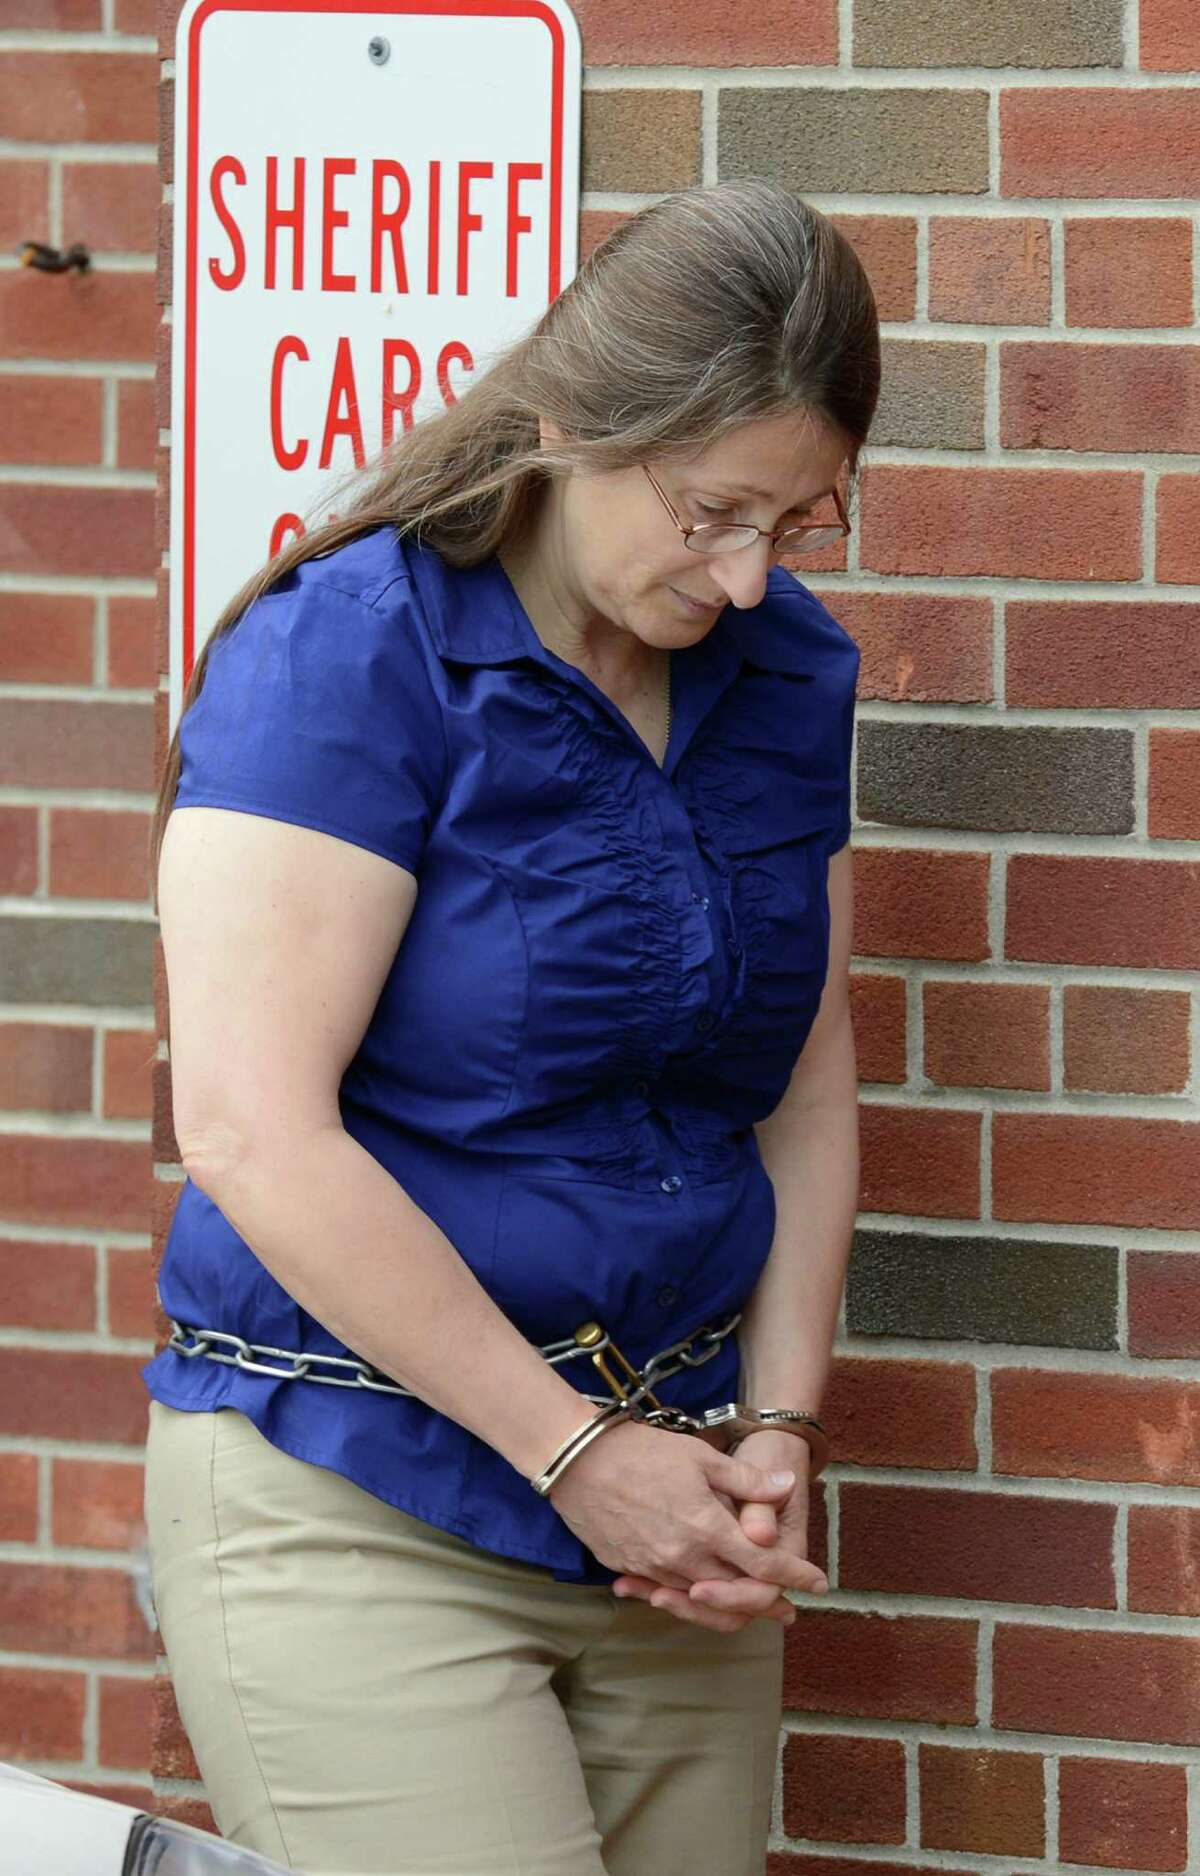 Lydia Salce, 50 enters the Saratoga County Courthouse in Ballston Spa, N.Y. June 26, 2012 for opening arguments in her attempted murder trial where she is charged with allegedly stabbing her husband more than a dozen times during a domestic dispute last summer. (Skip Dickstein / Times Union)